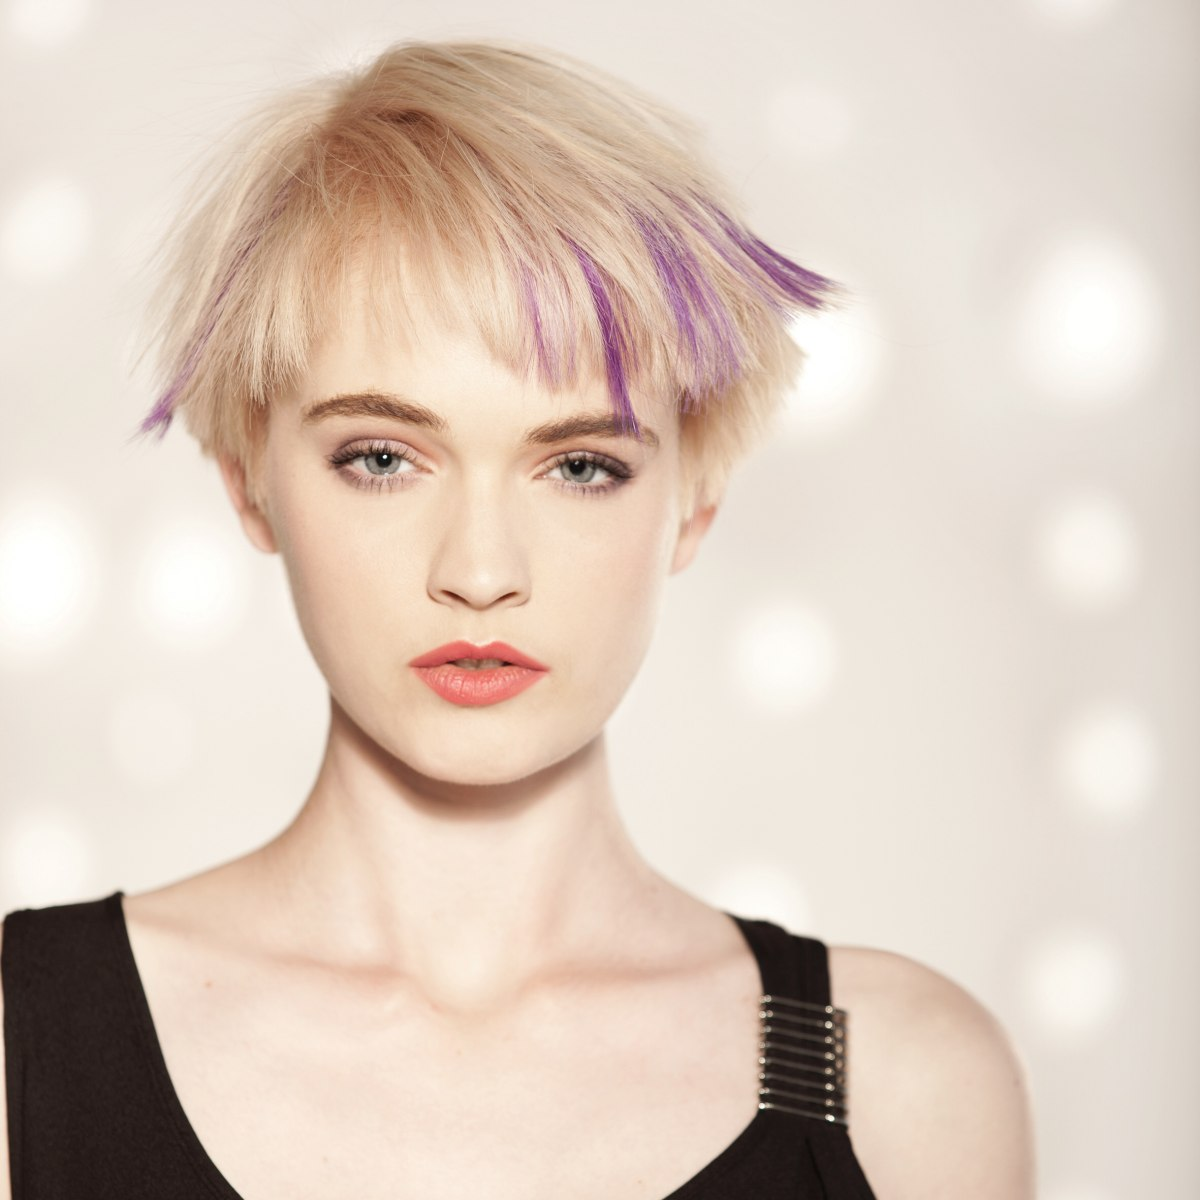 Short Haircut With A Jagged Texture And Purple Streaks